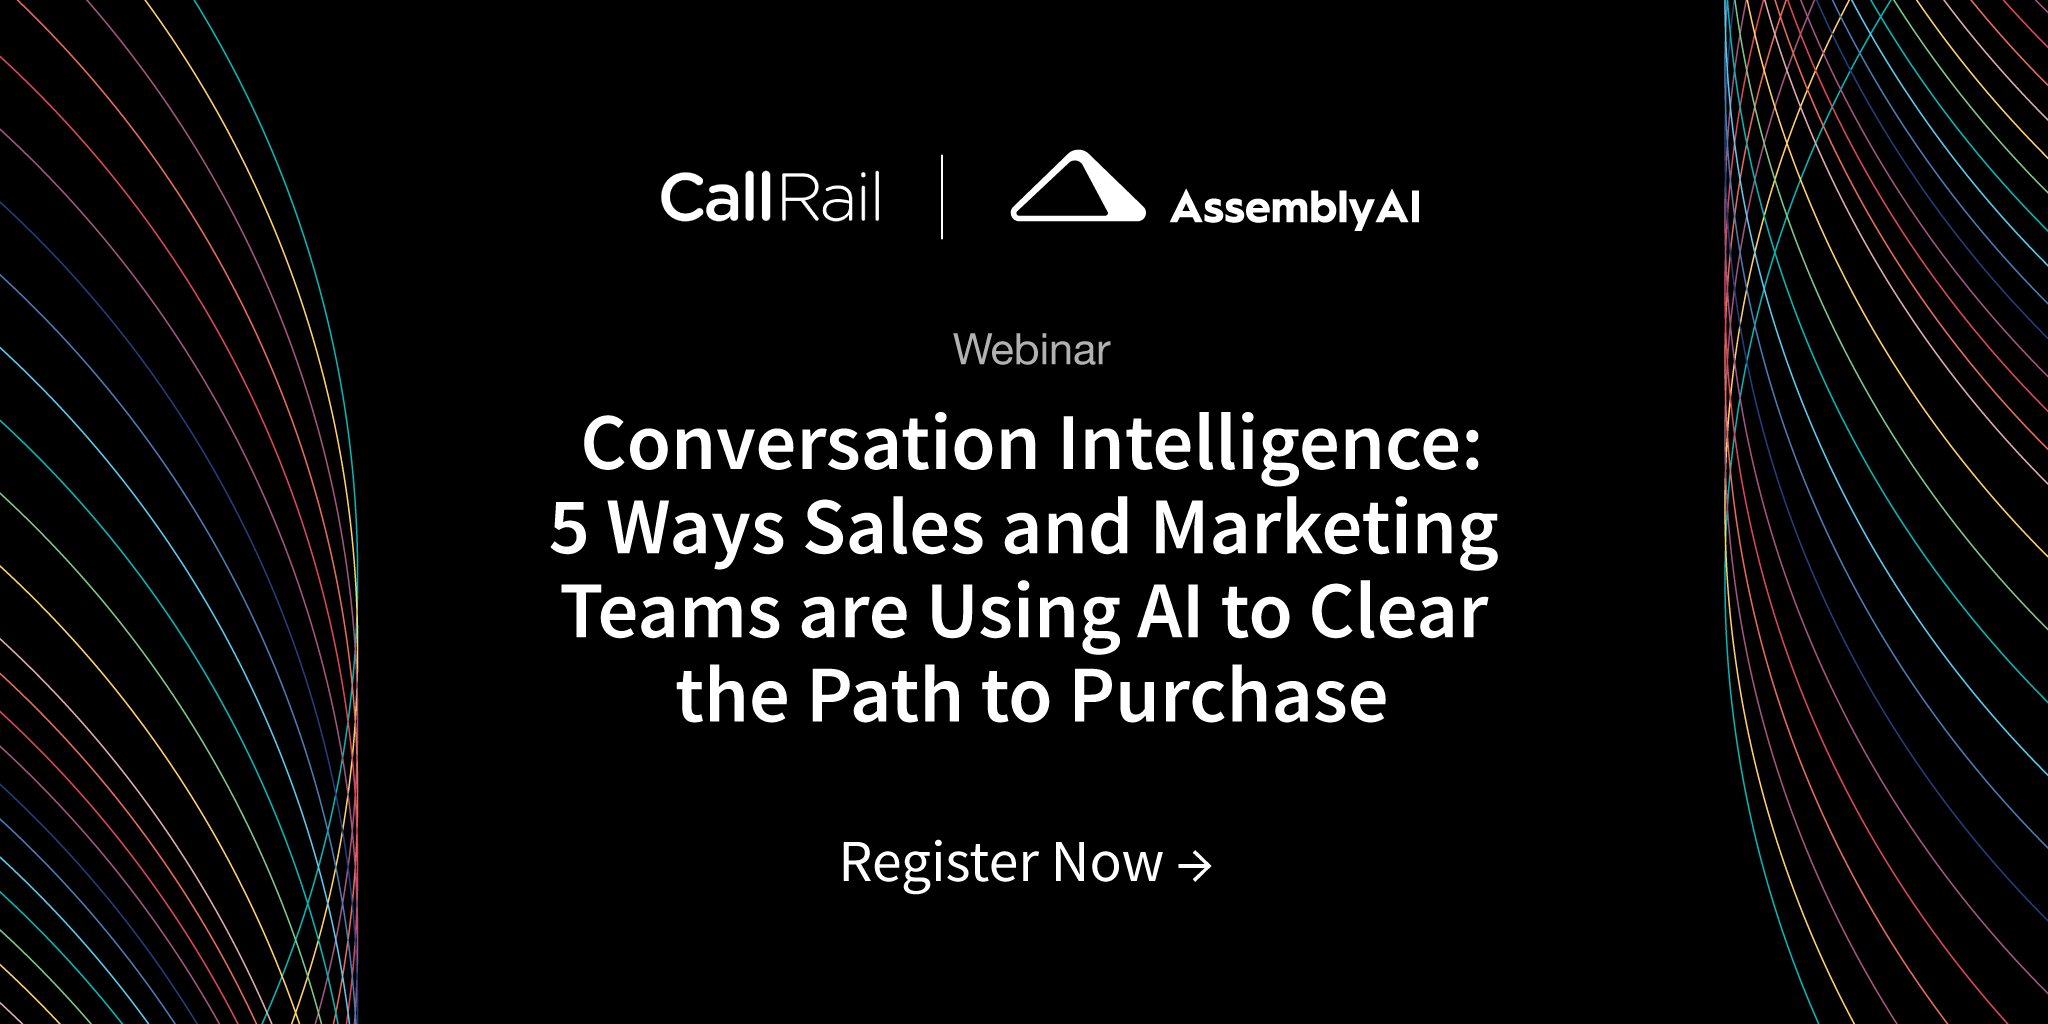 Conversation Intelligence with CallRail and AssemblyAI